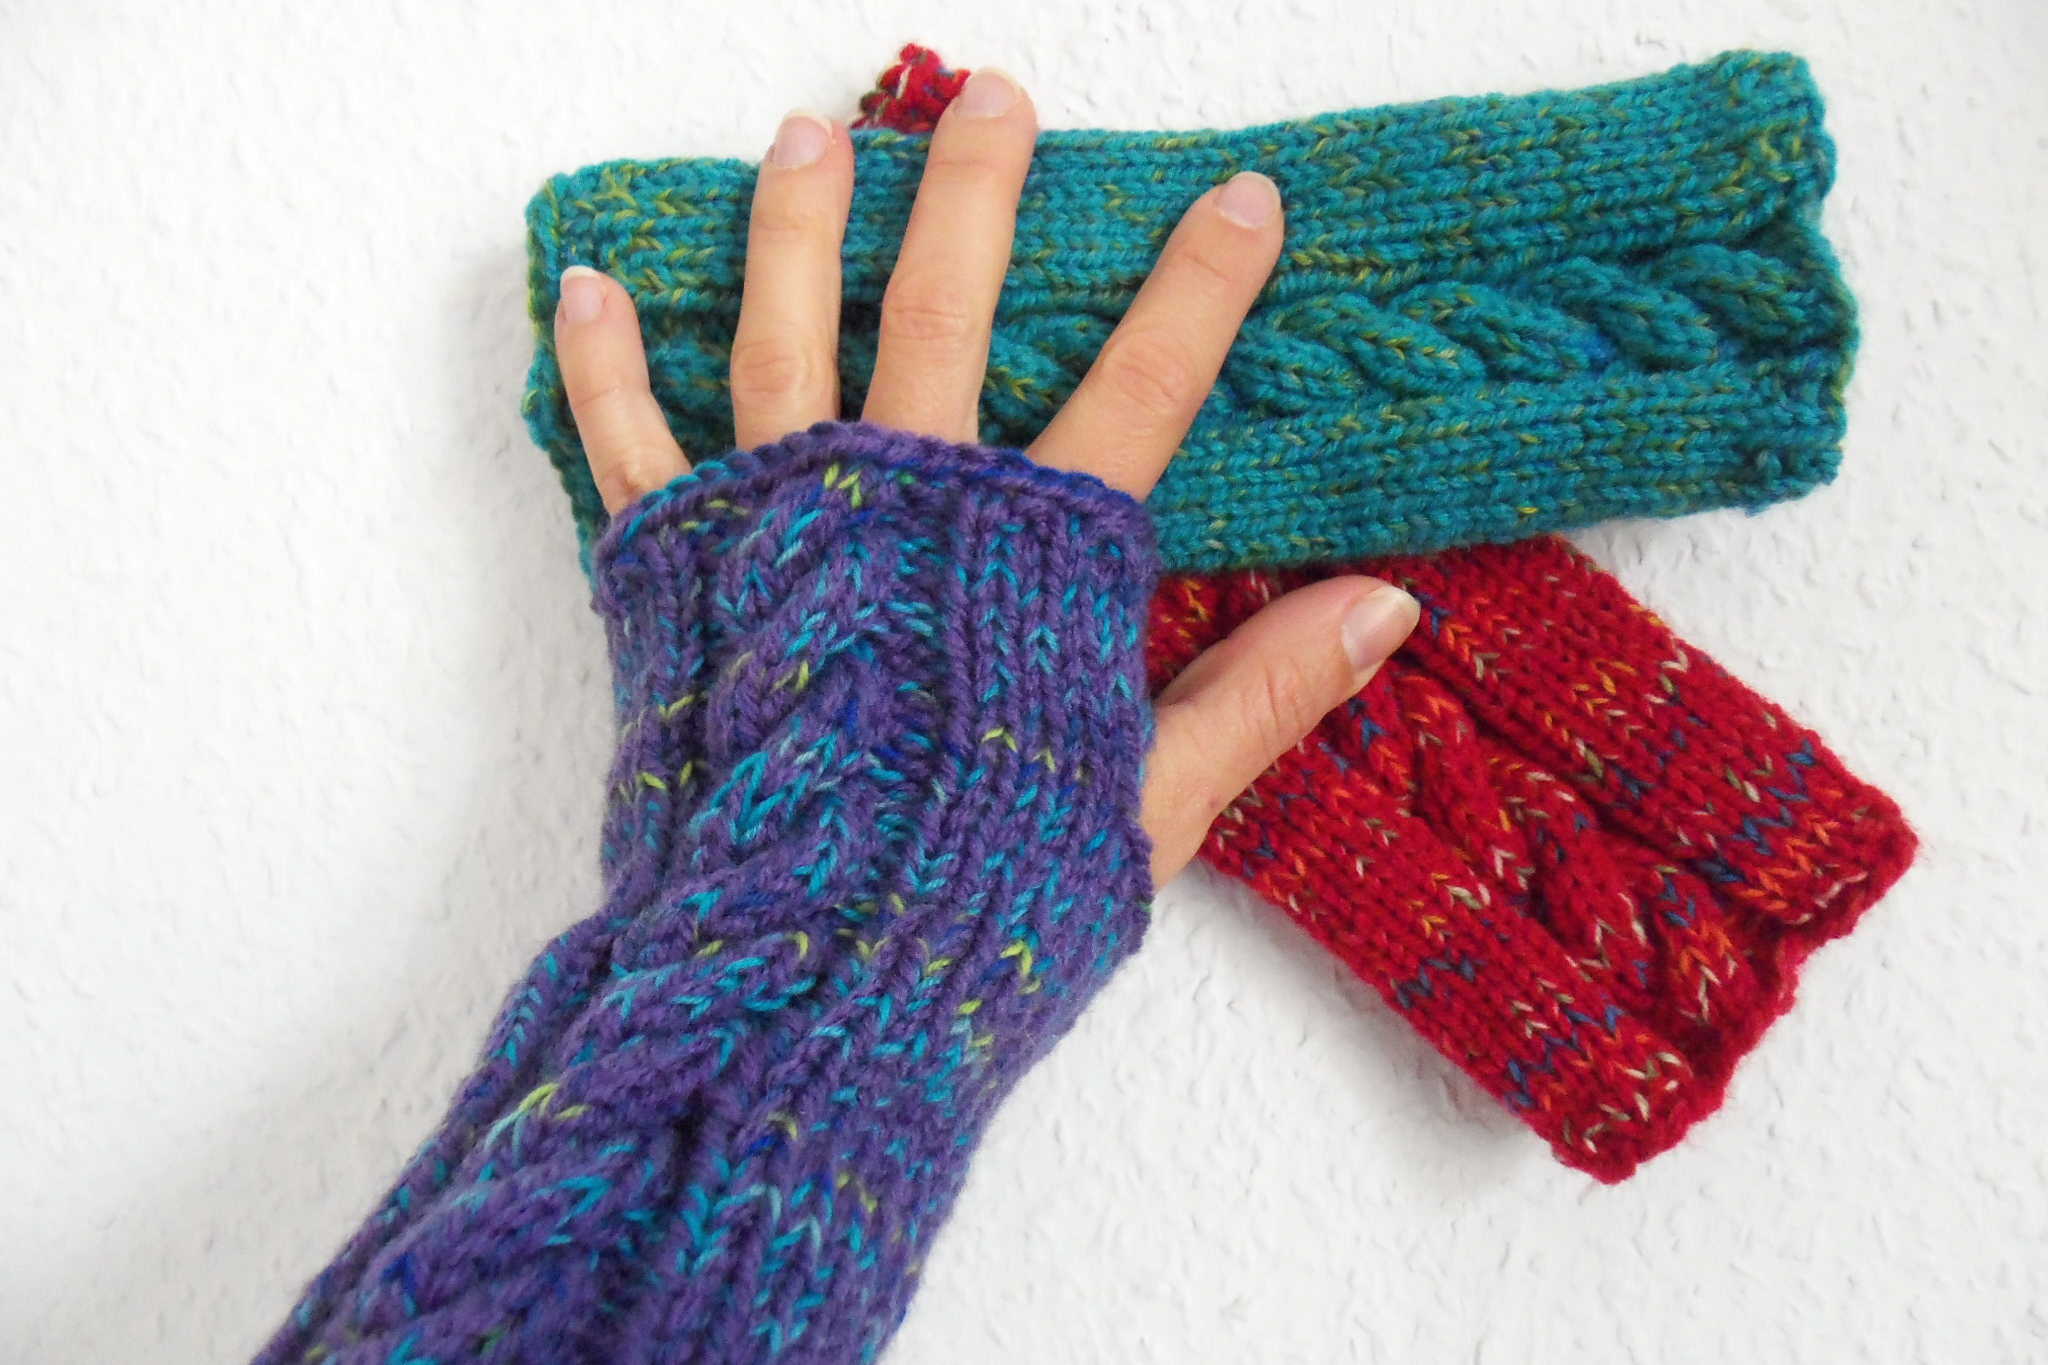 wrist warmers | Häkelmonsterwrist warmers